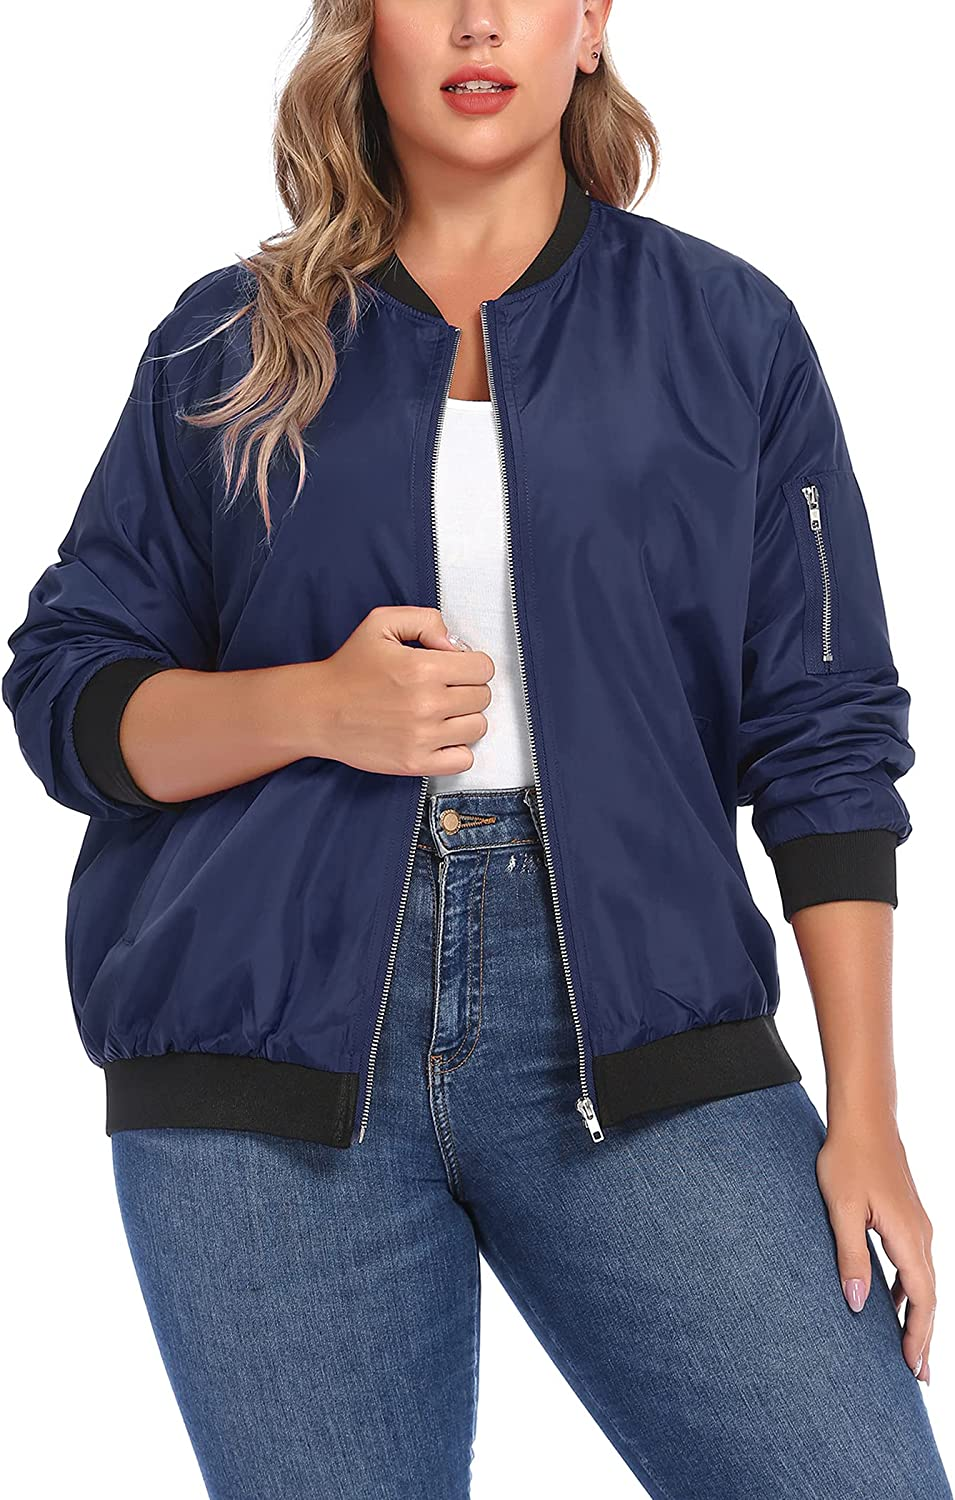 IN'VOLAND Womens Jacket Plus Size Jackets Ranking integrated 1st place Lightweight wit Charlotte Mall Bomber